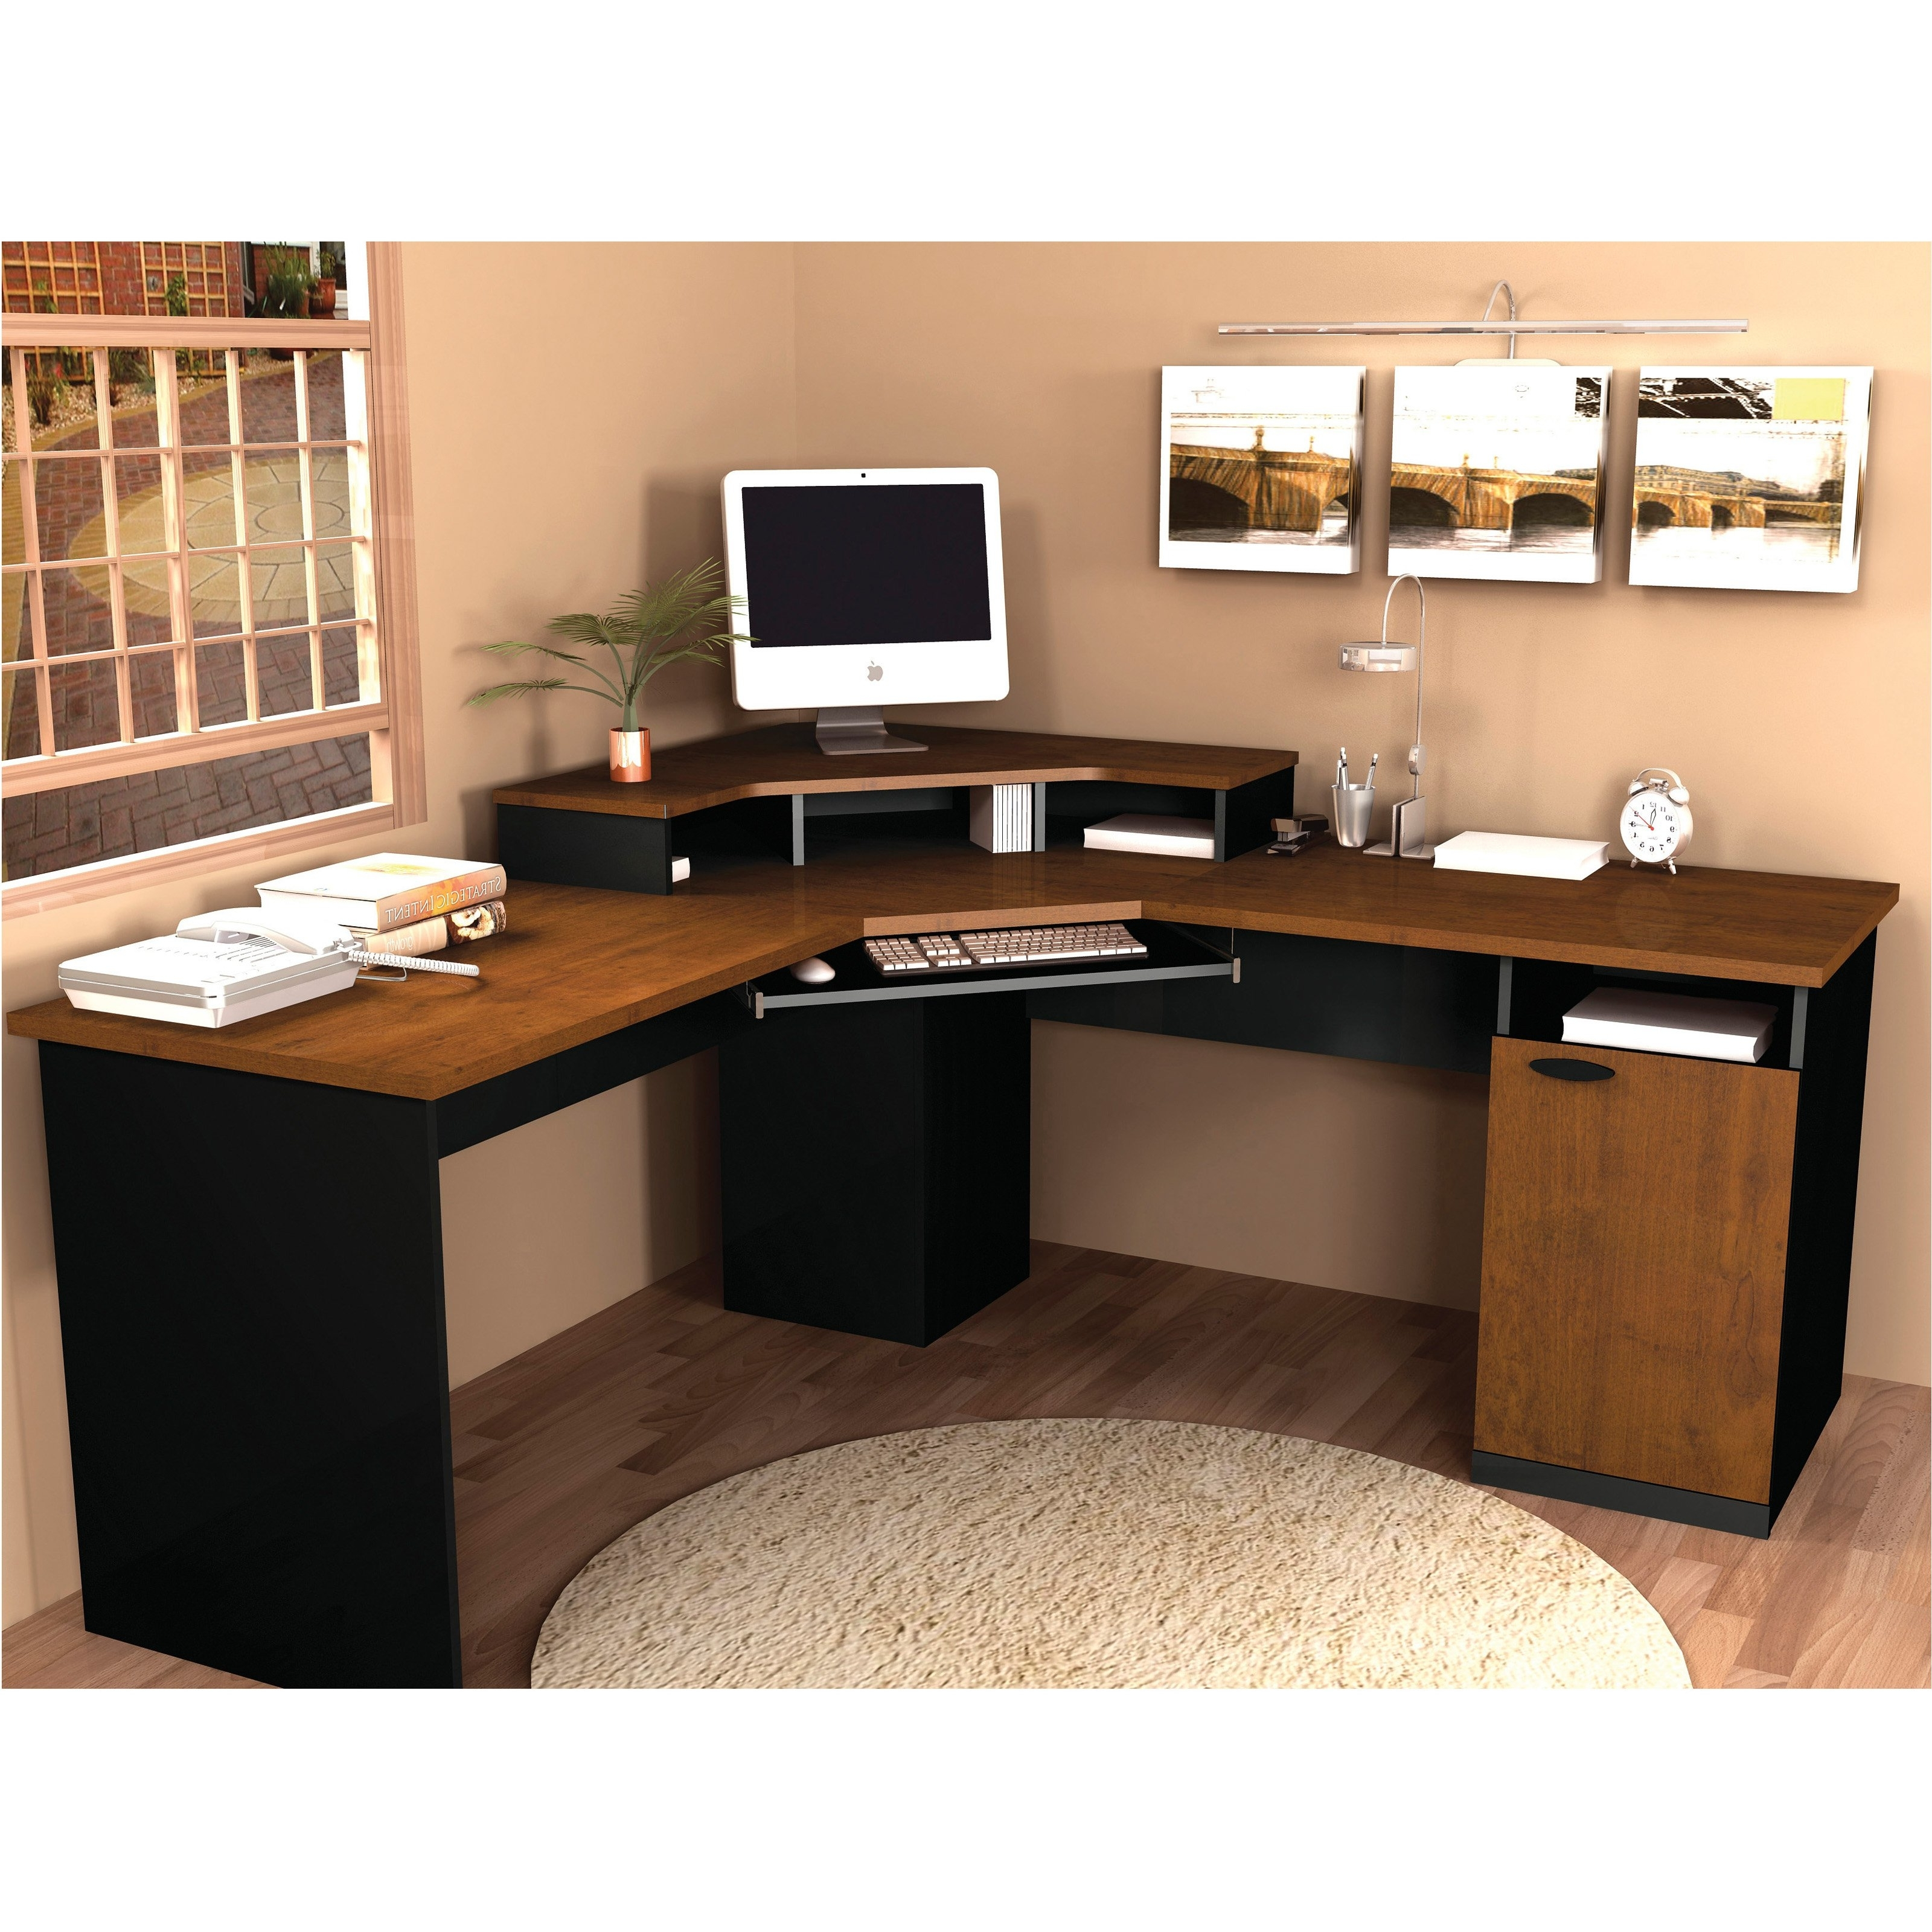 Computer Desks At Best Buy Intended For Widely Used Desk: Inspiring Best Buy Computer Desks 2017 Ideas L Shaped (View 5 of 20)